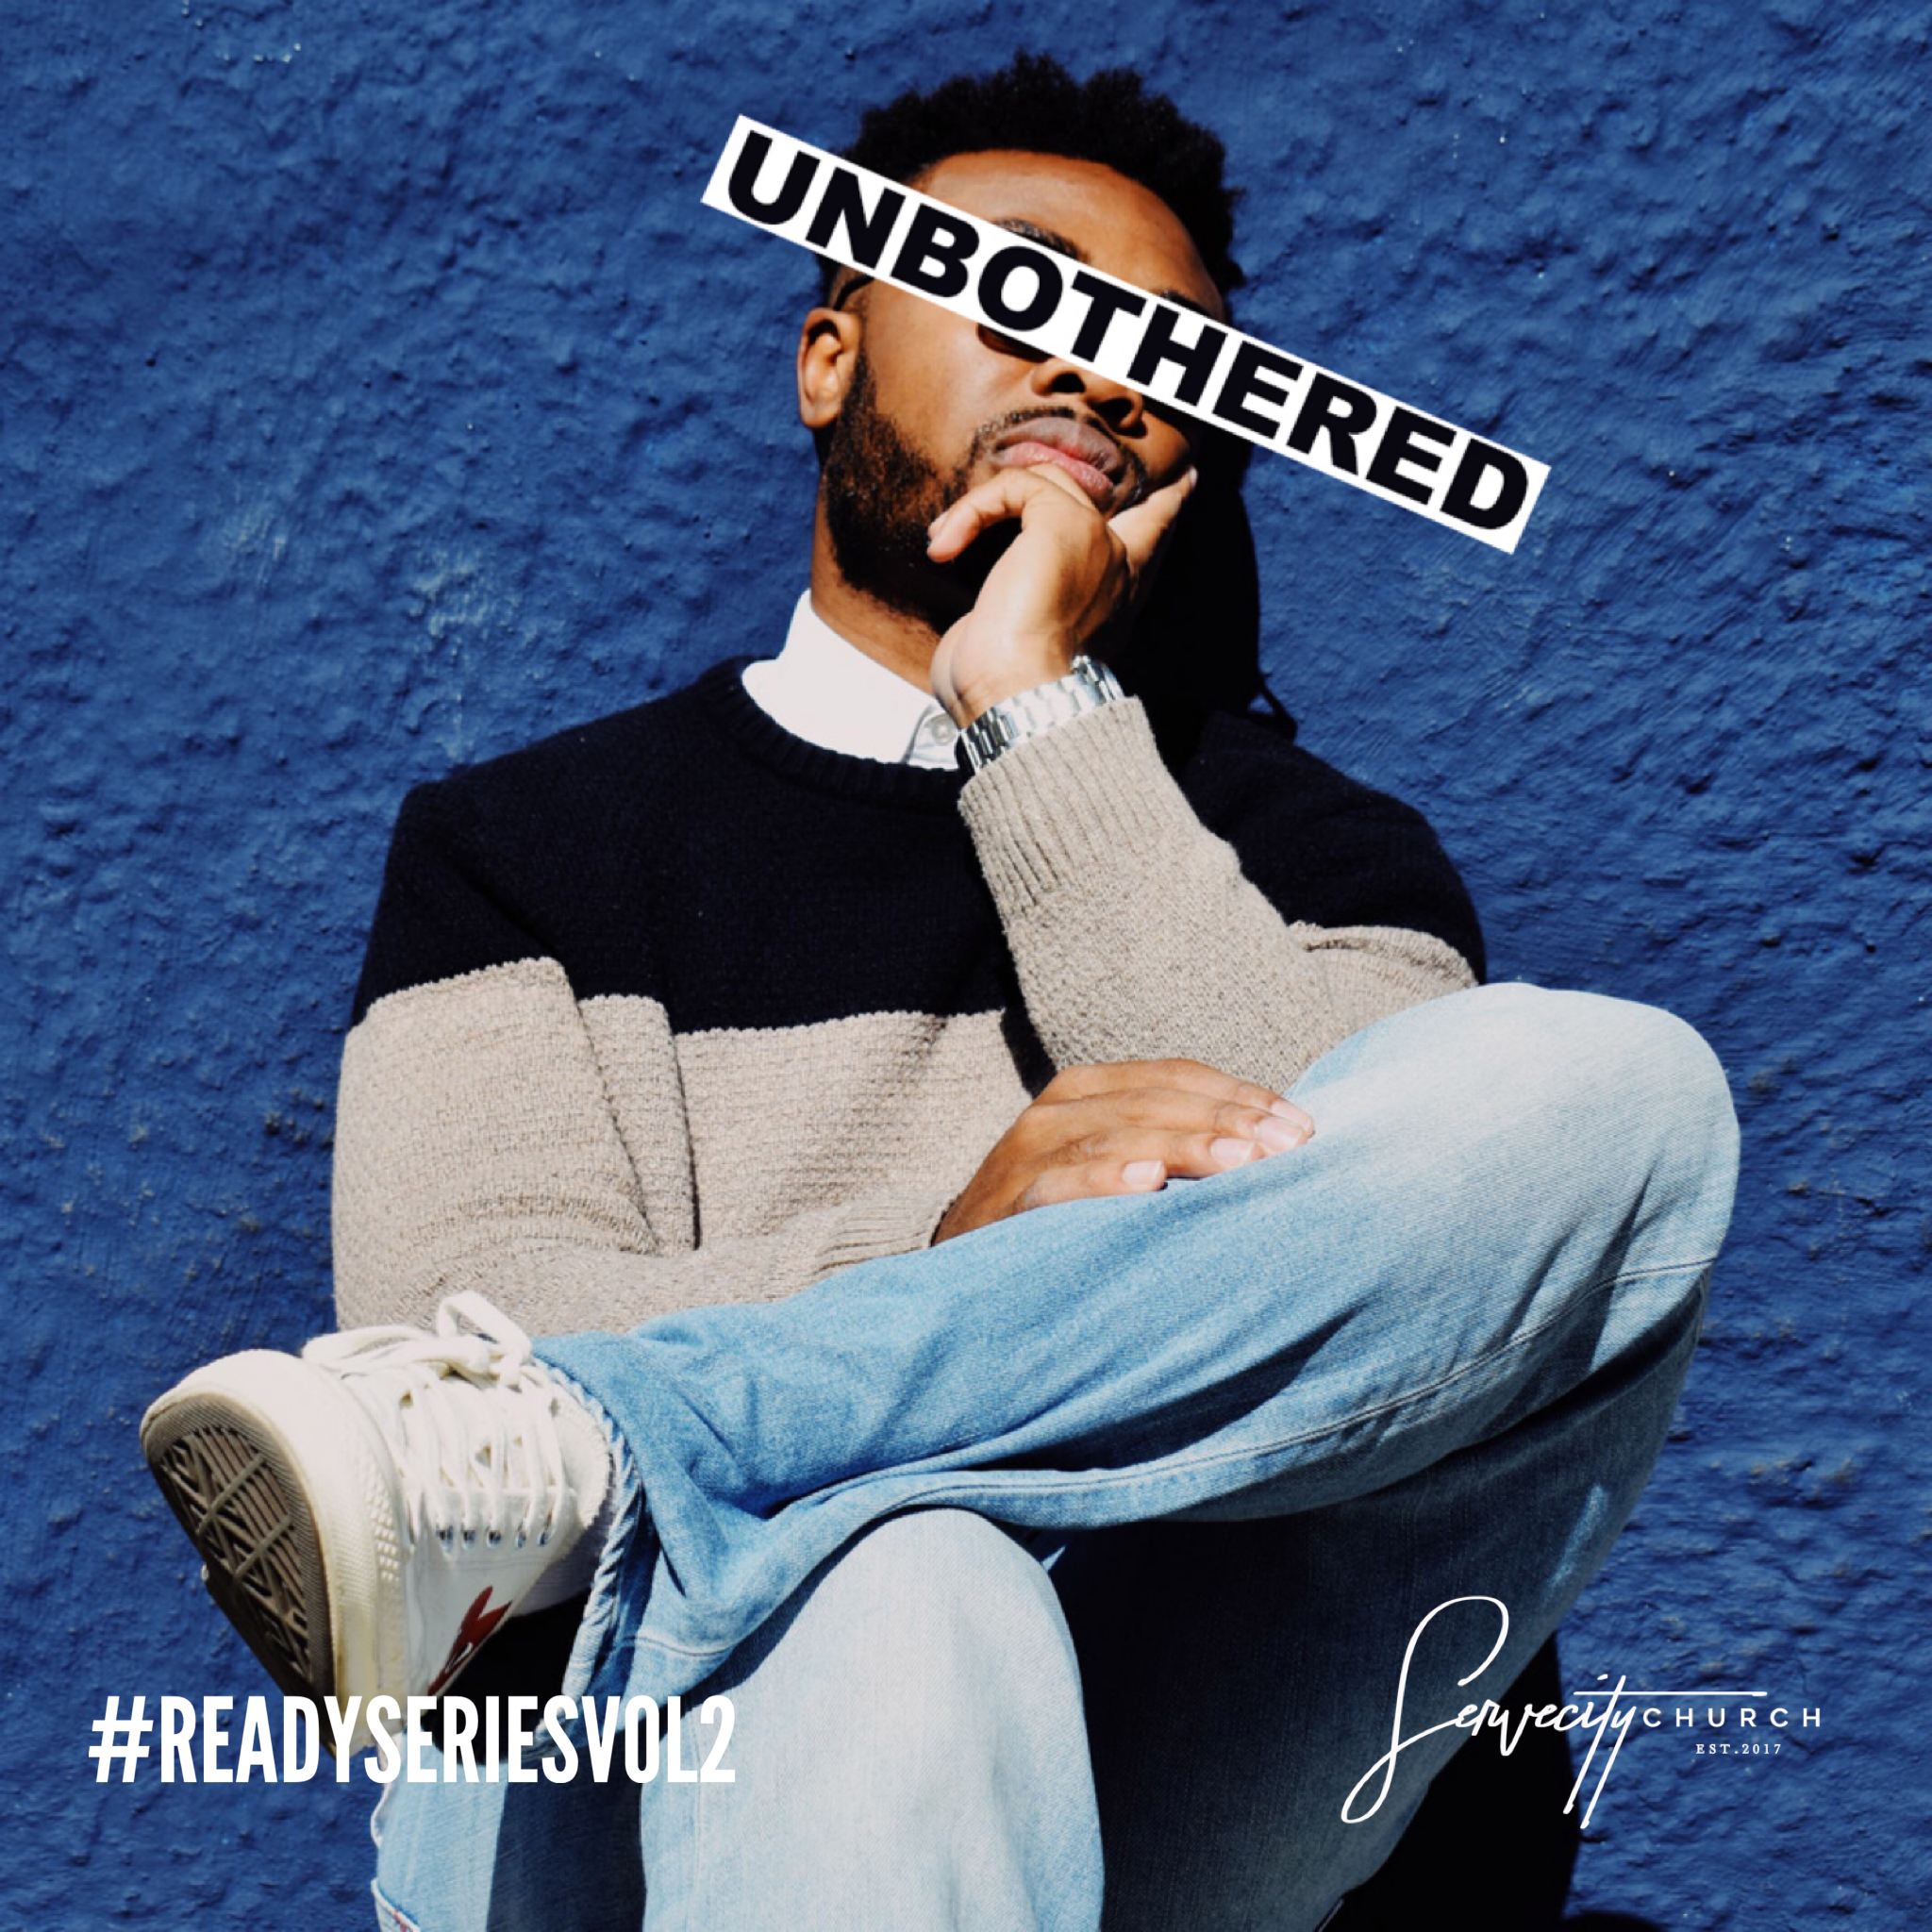 Unbothered Series copy.jpg